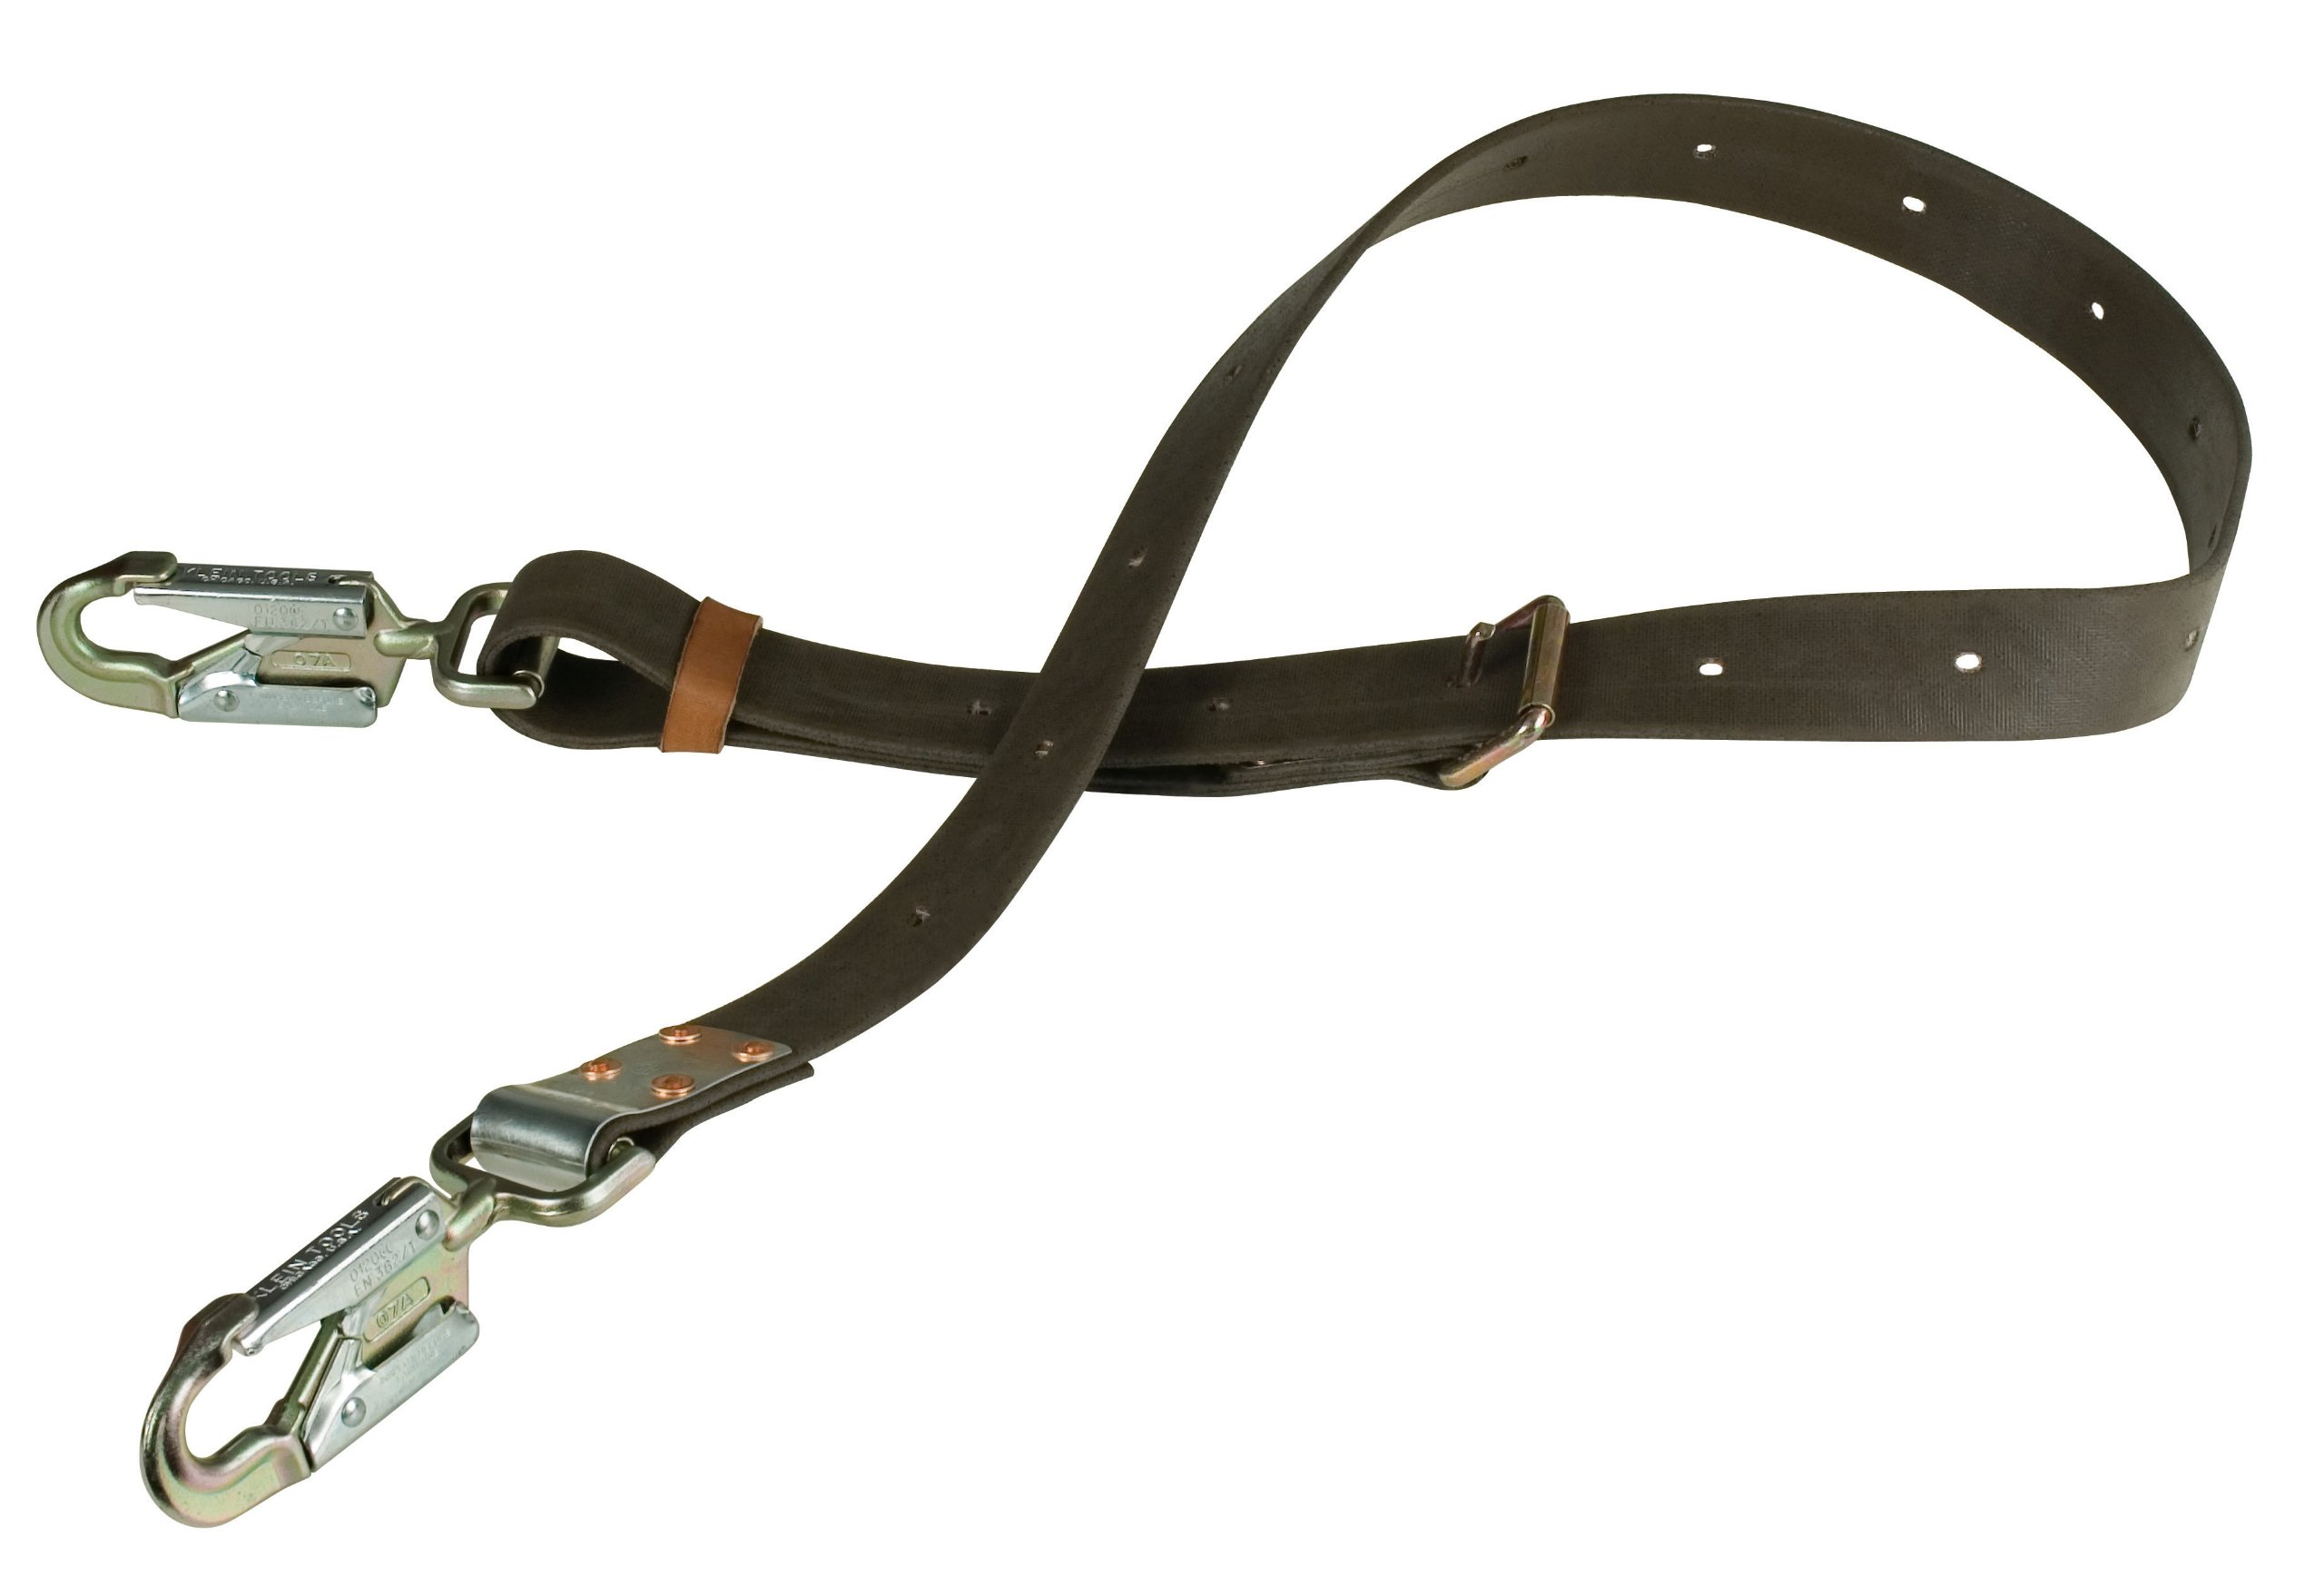 Positioning Strap with 6-1/2-Inch Snap Hook, 6-Foot Long Klein Tools KG5295-6L by Klein Tools (Image #1)